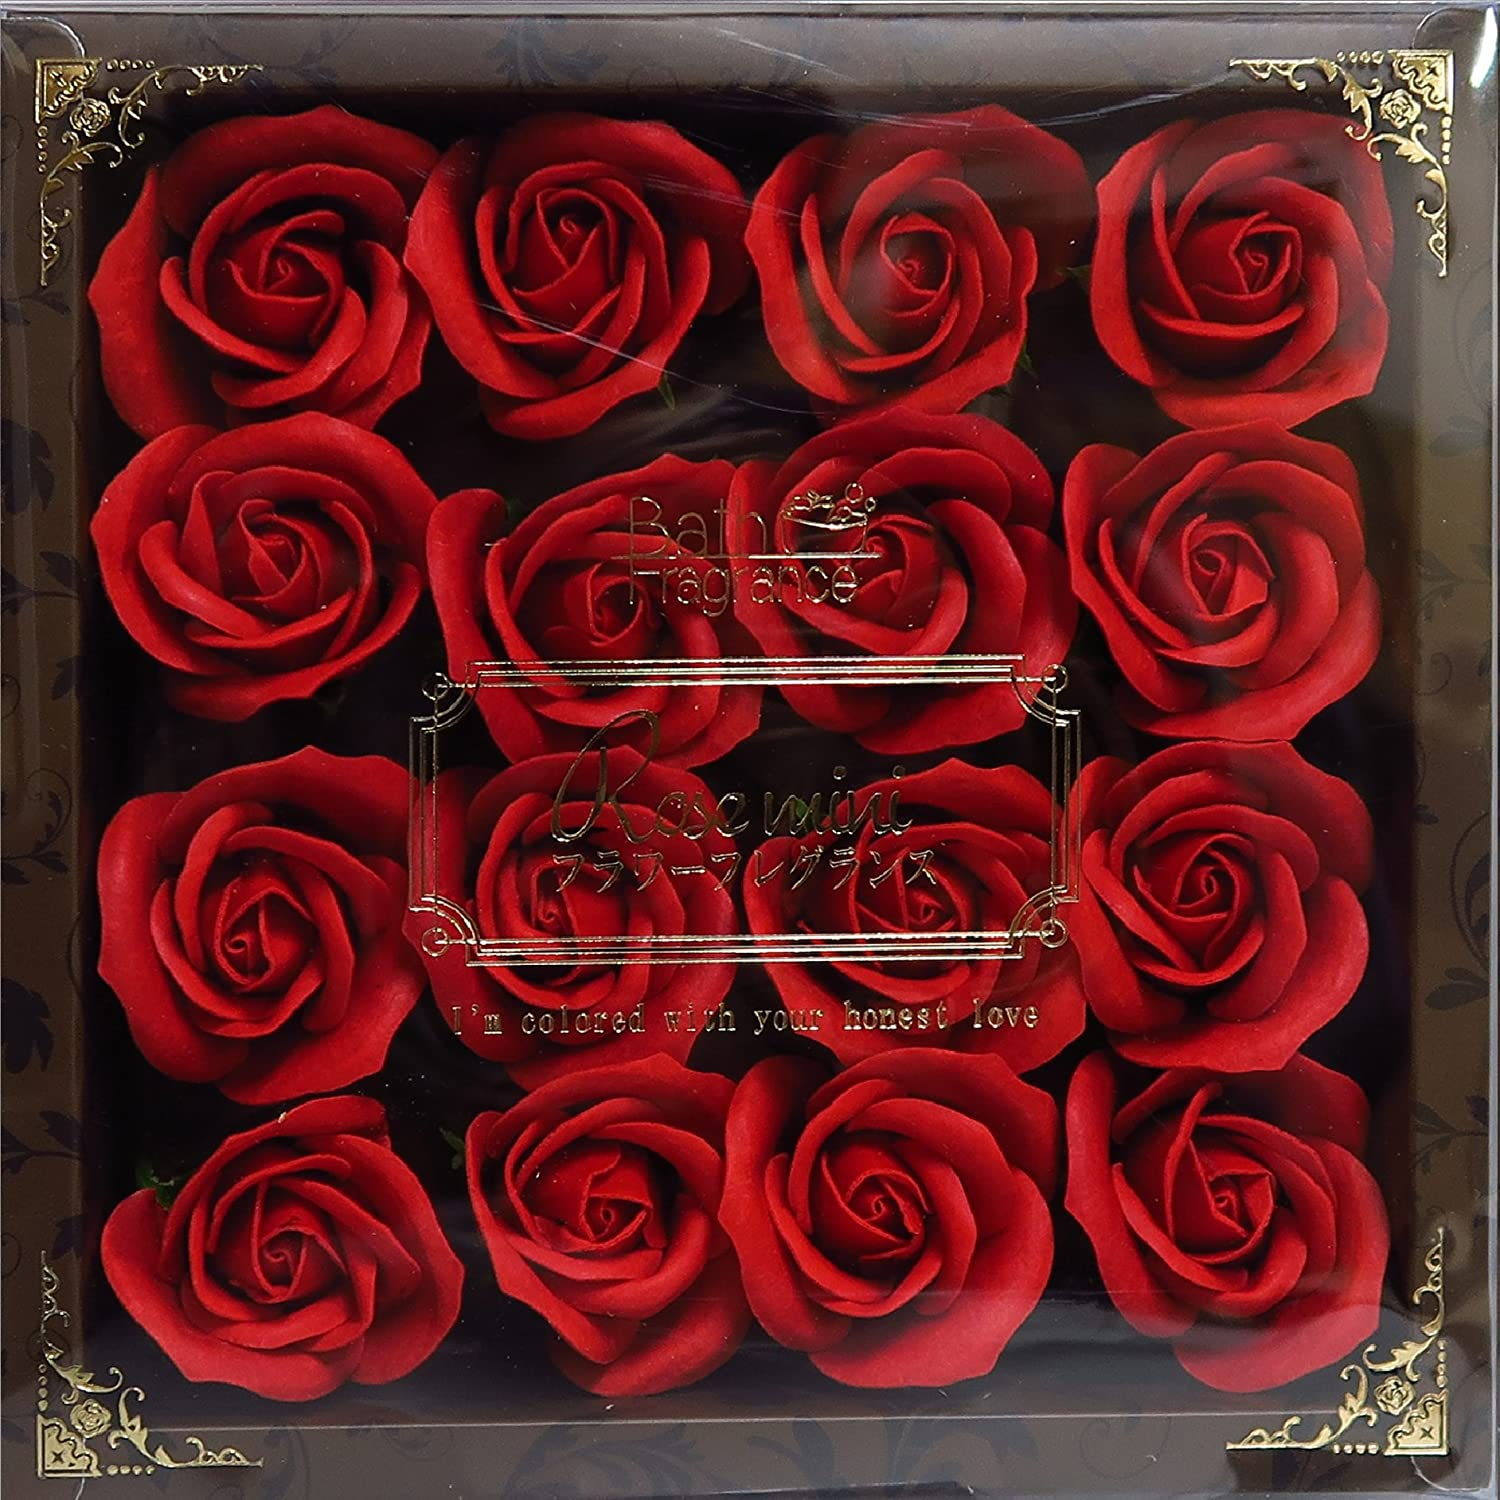 LEATHER GEAR SHIFT KNOB RED ROSE ROSES LOVE